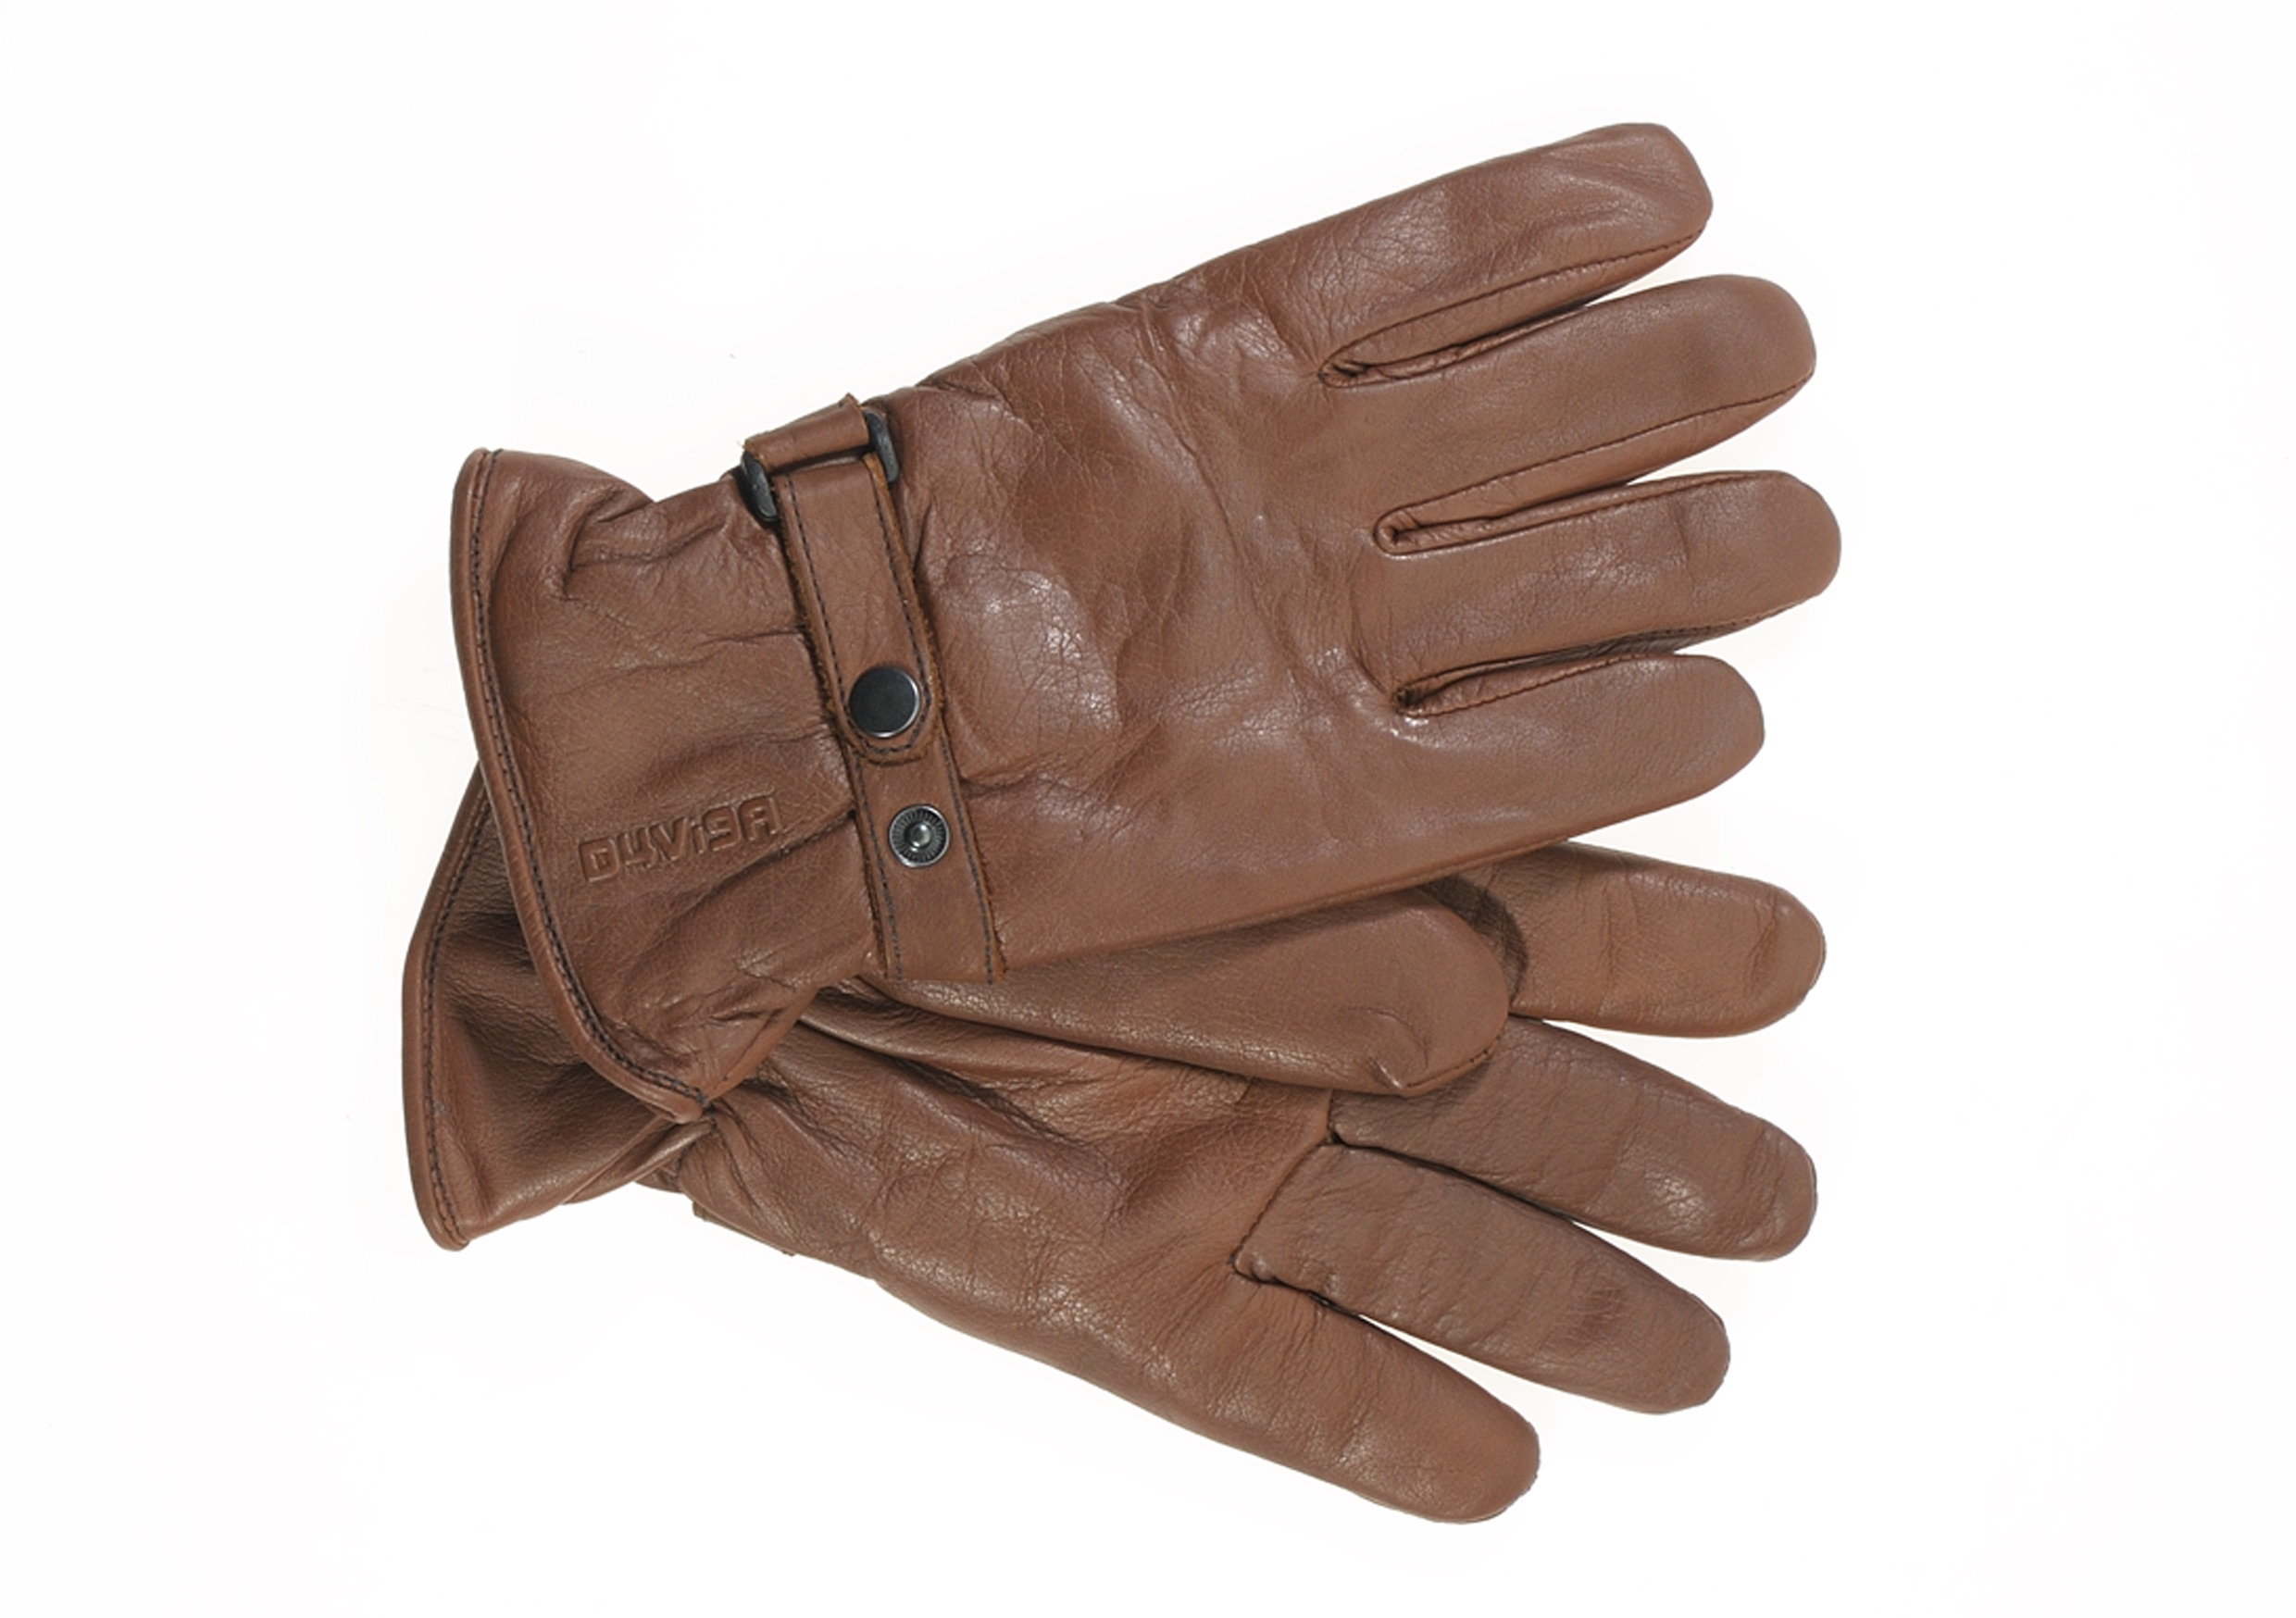 New NUT Brown Leather Shorty Gloves by D4Vi9A